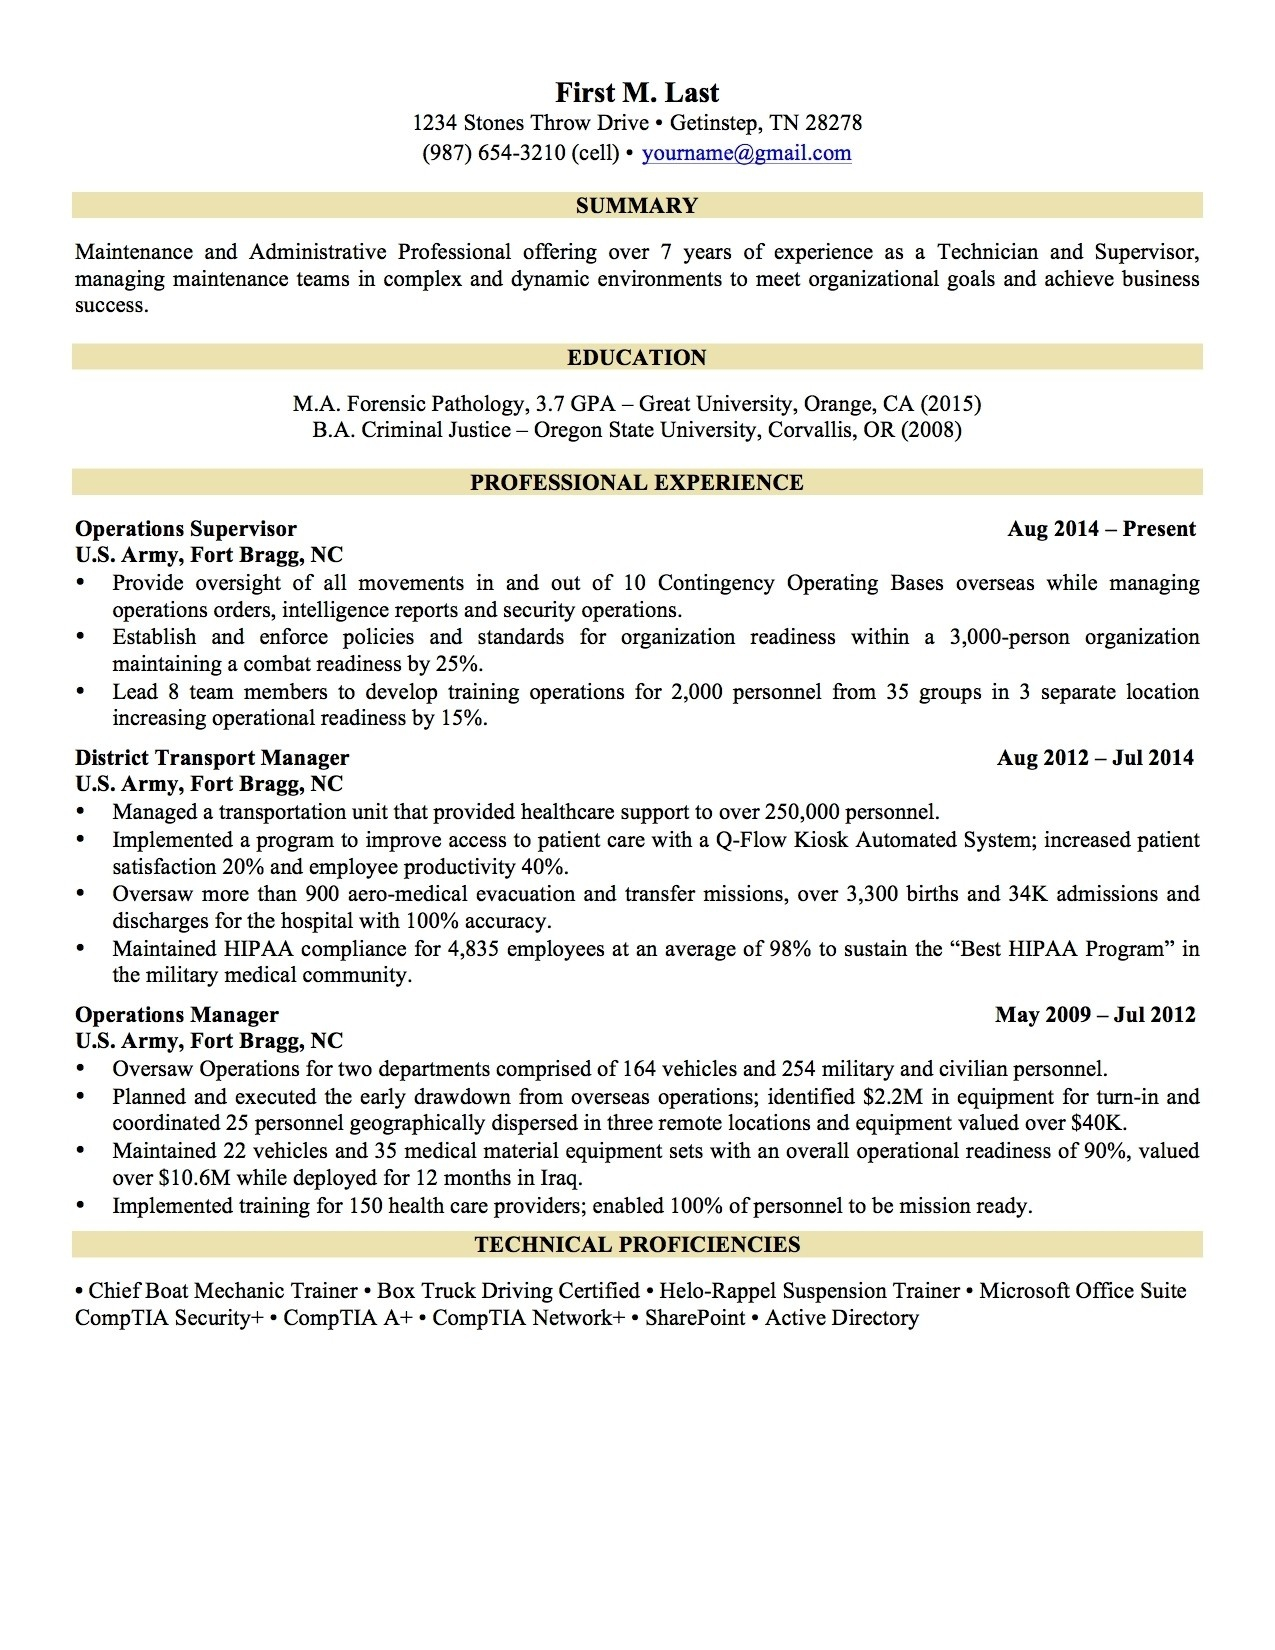 Trainer Resume Sample - Resume Examples Professional Experience Inspirational Fresh Grapher